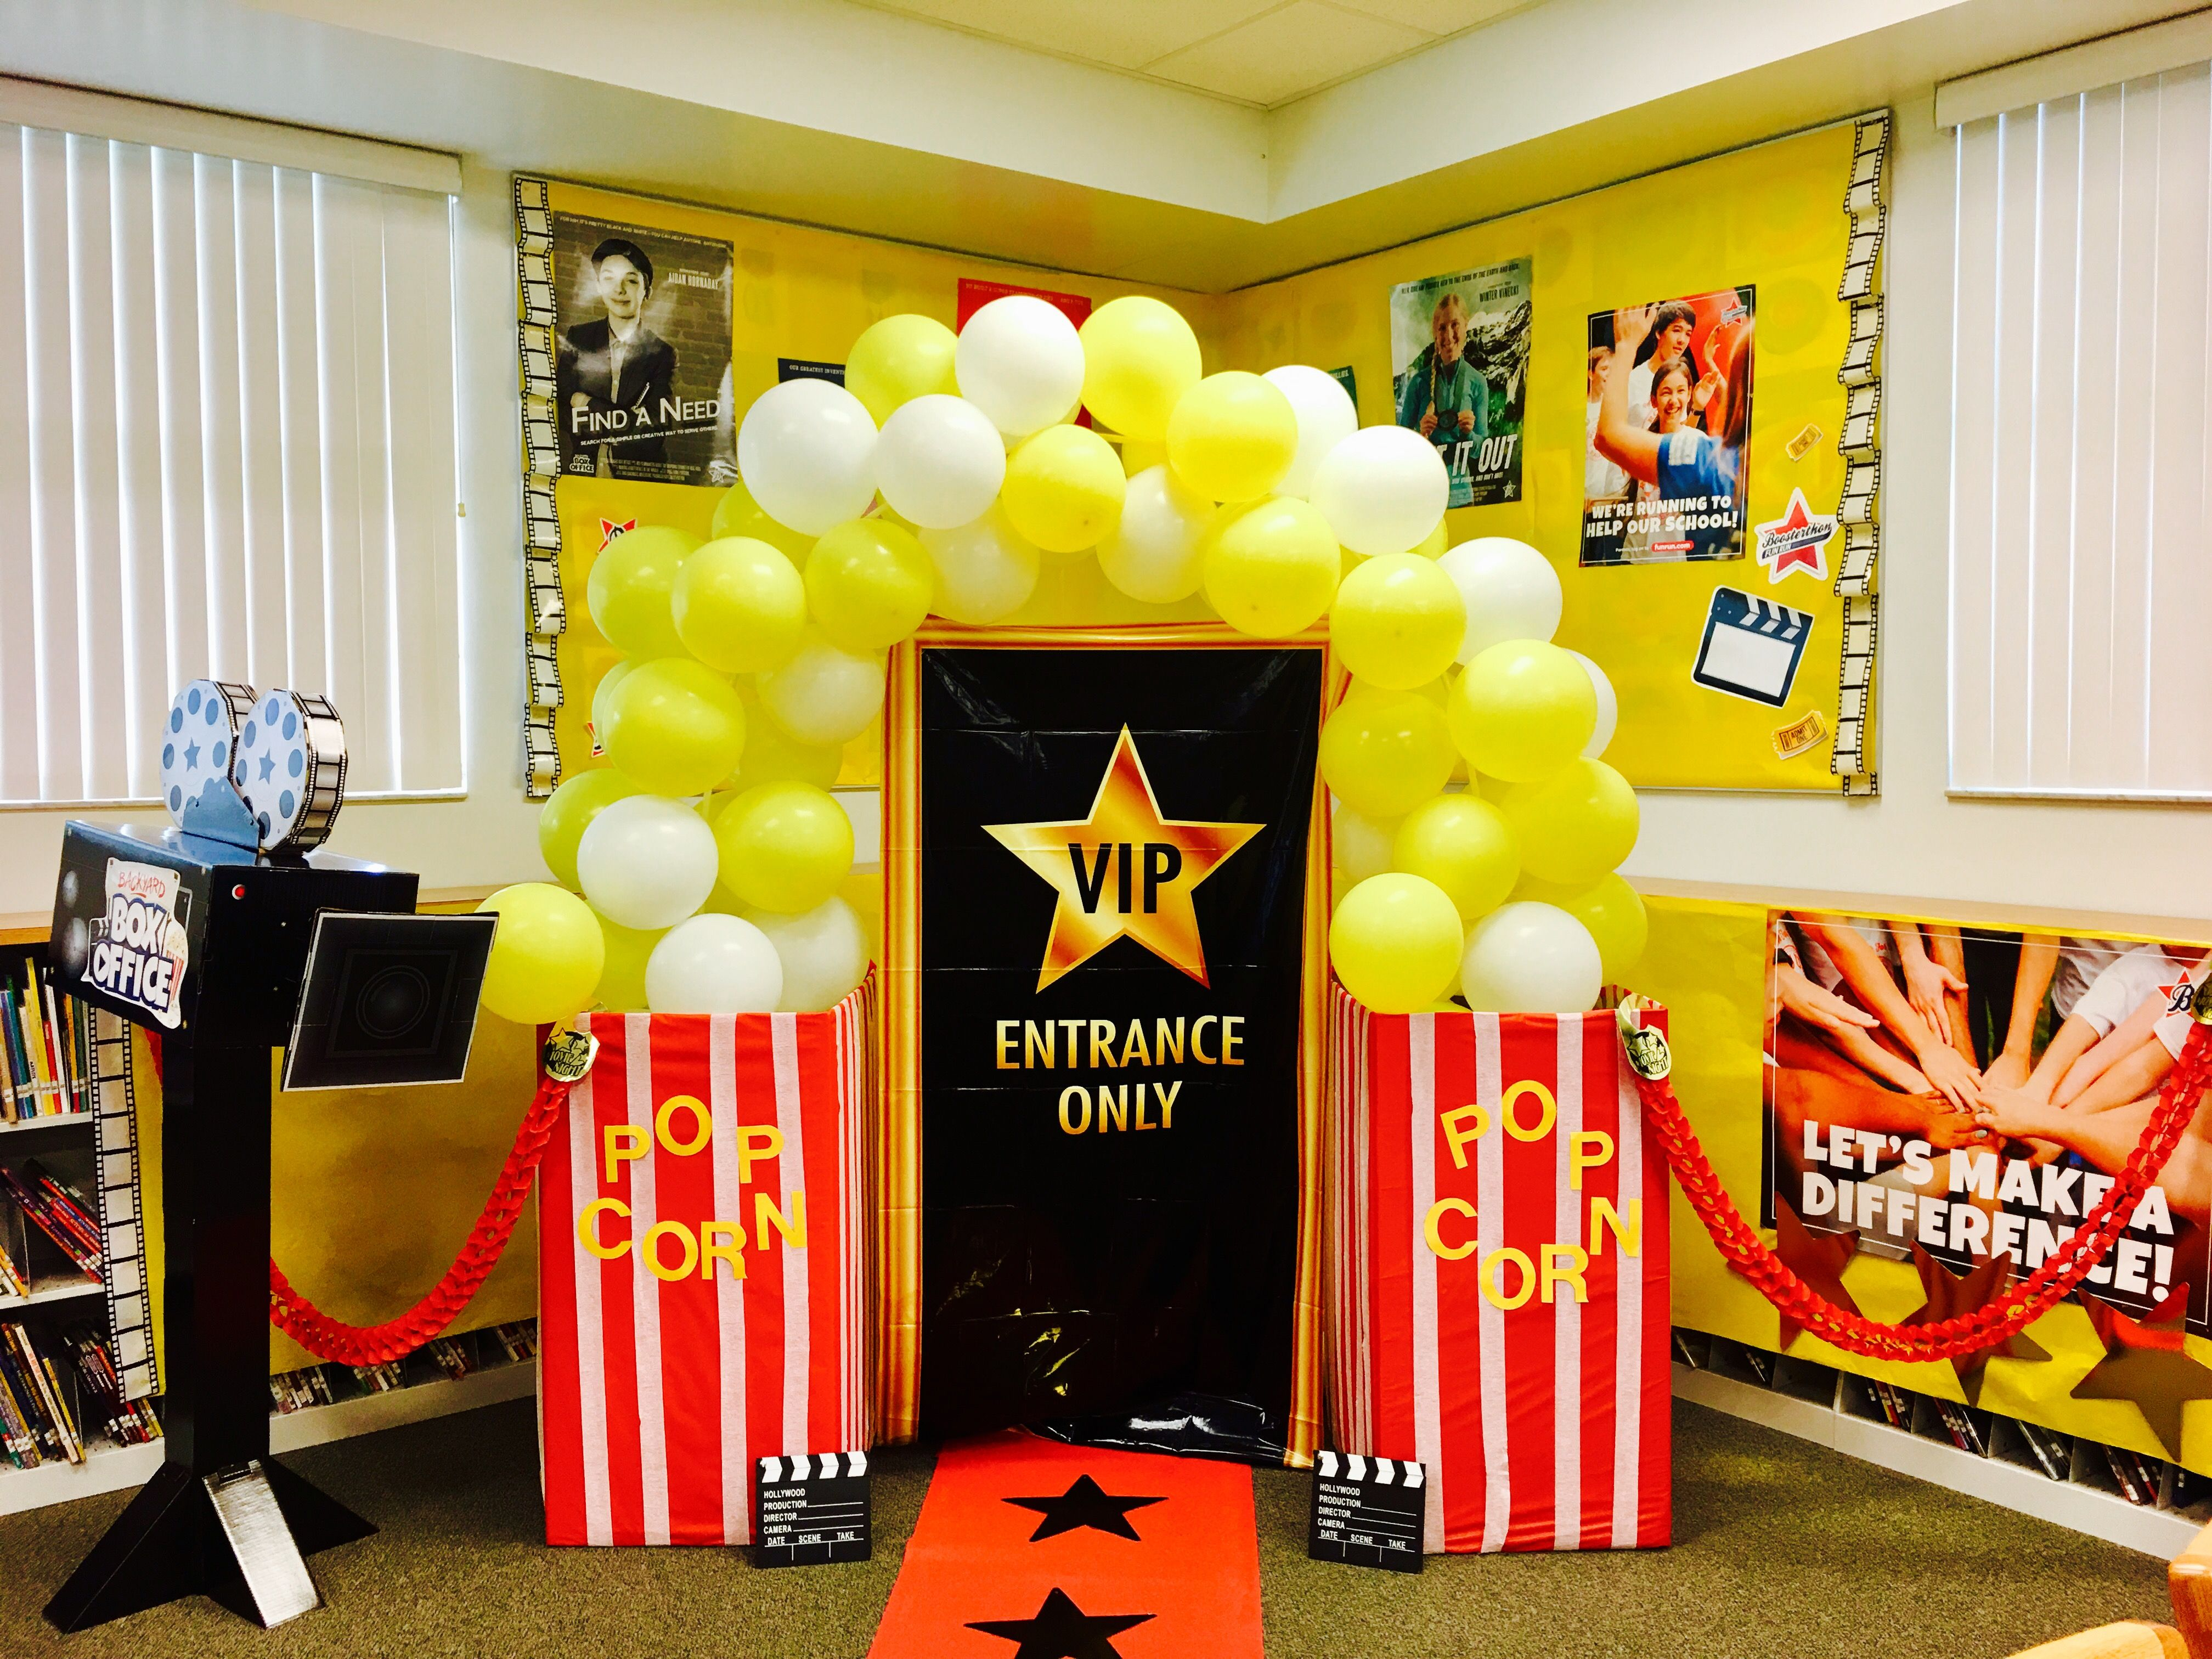 Rockstar Classroom Decor ~ Pin by boosterthon fun run on campus backyard box